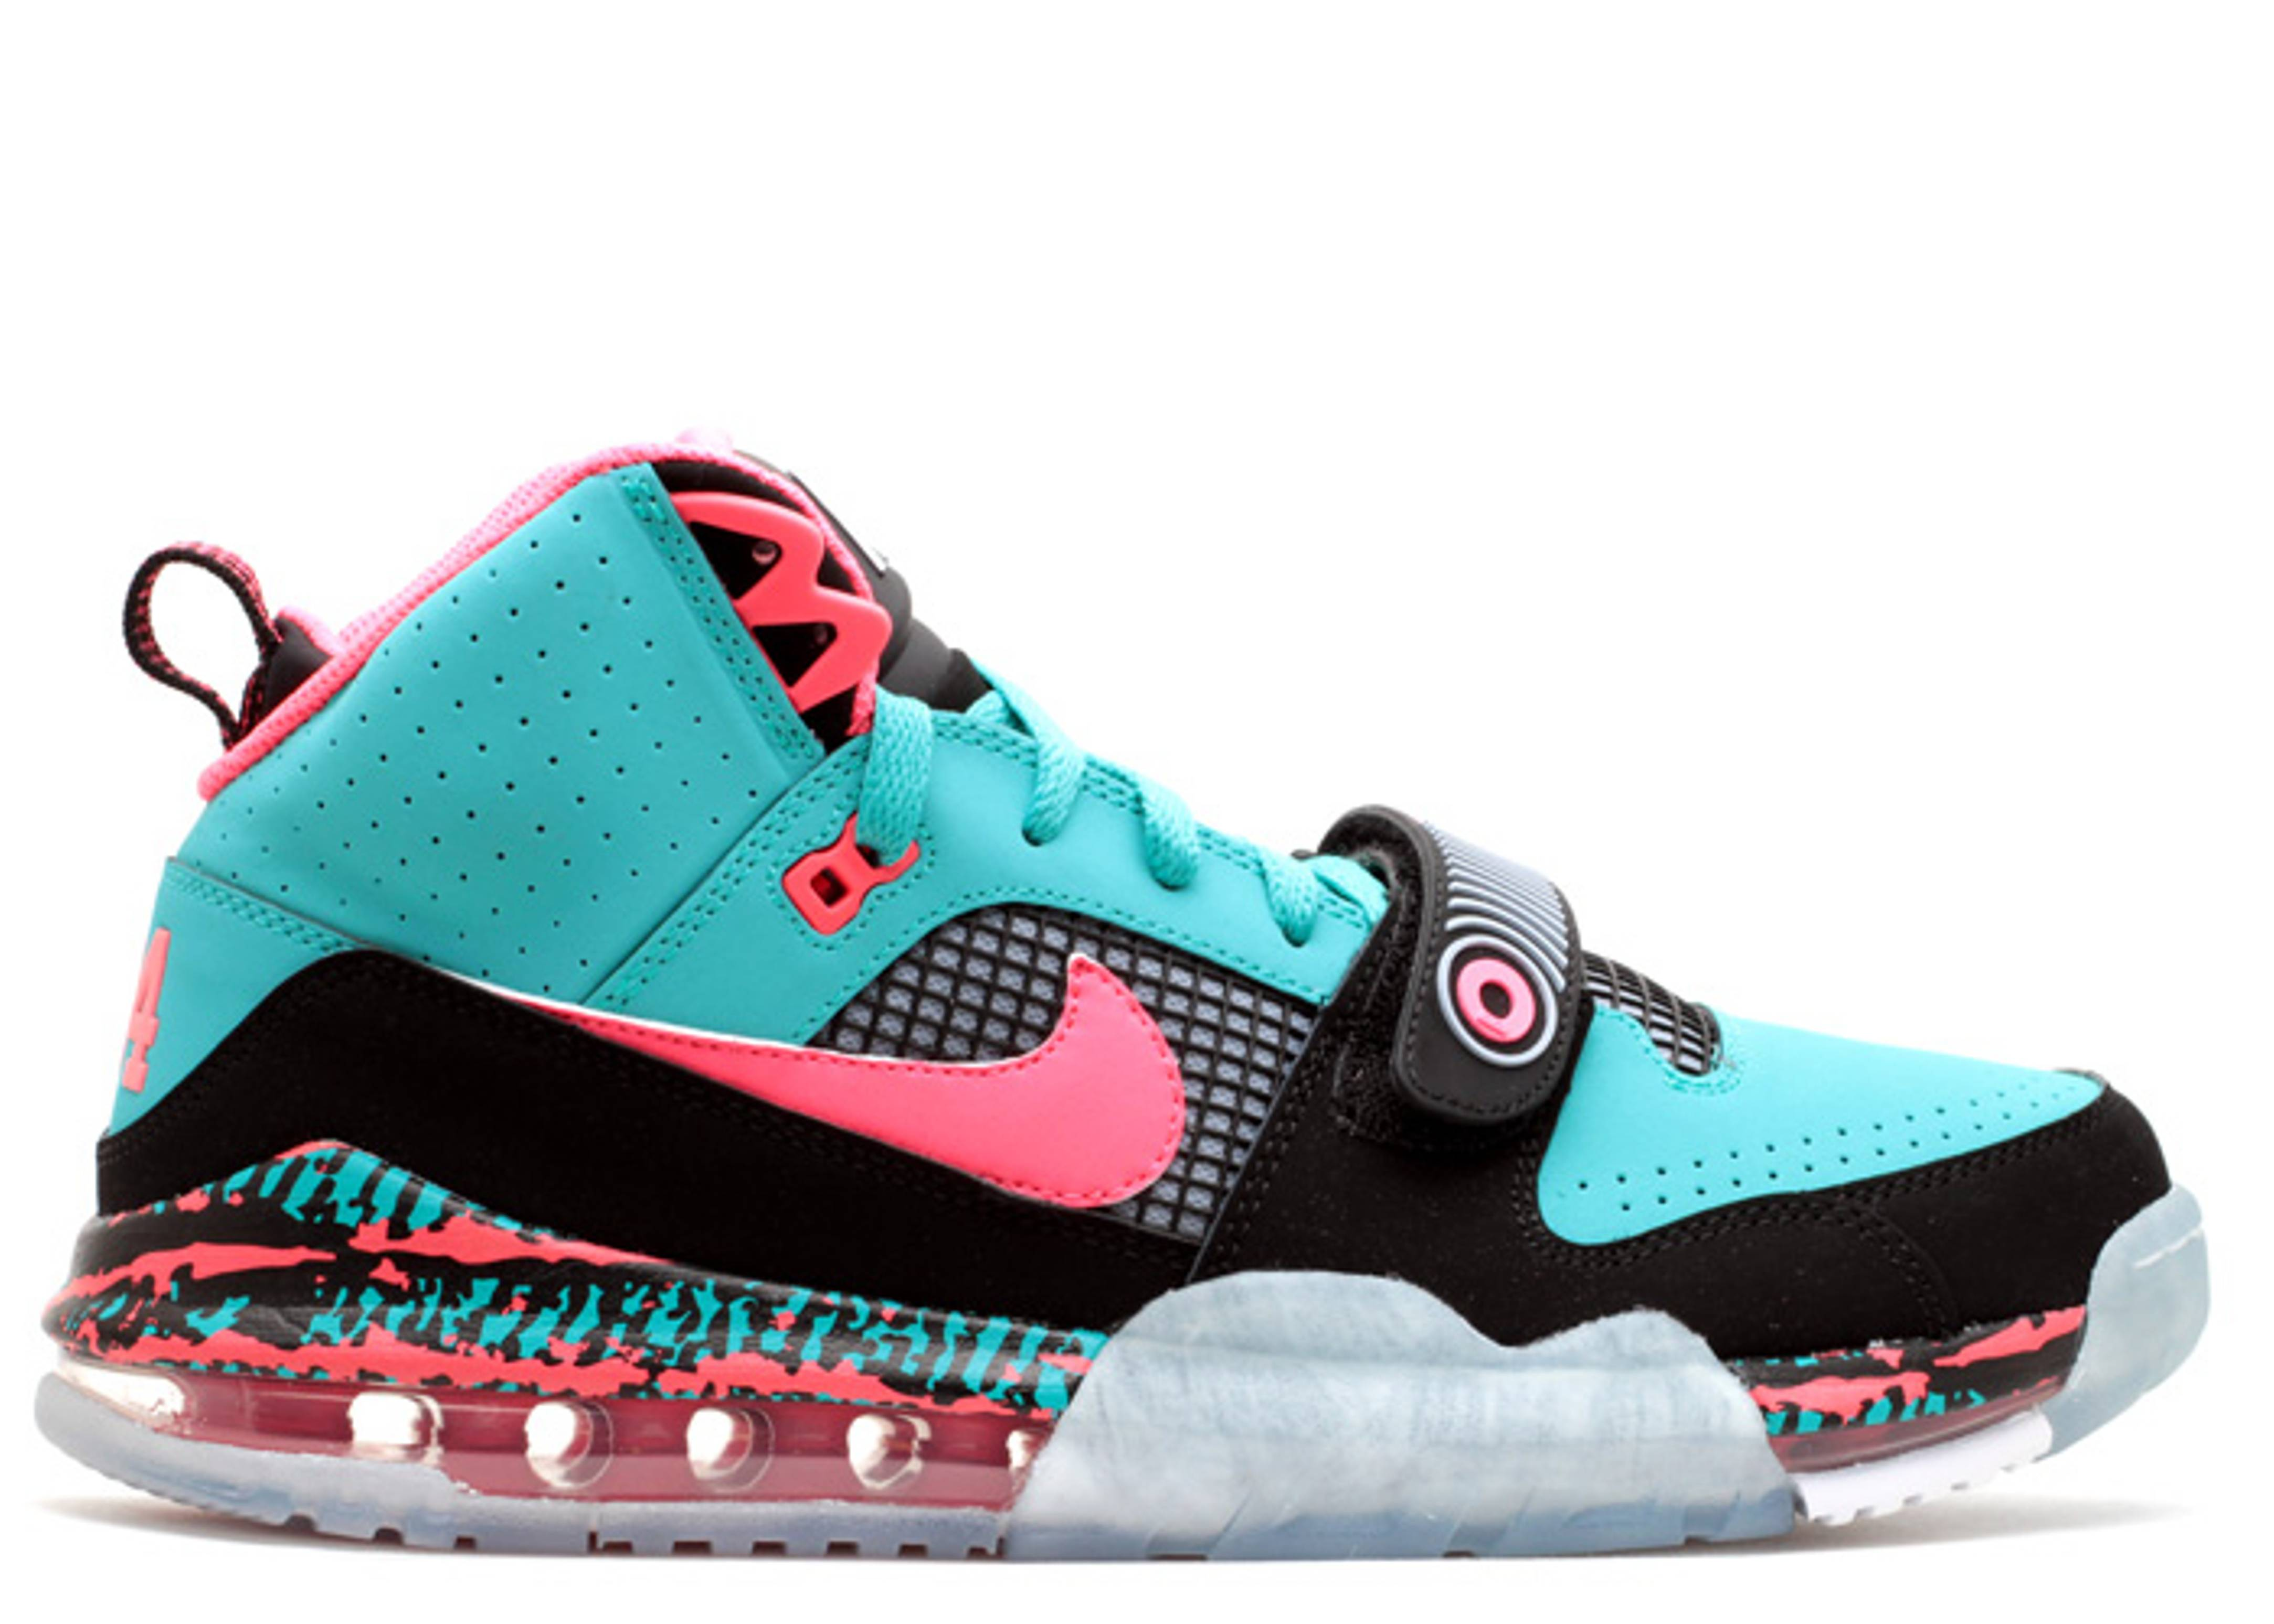 air max bo jax prm